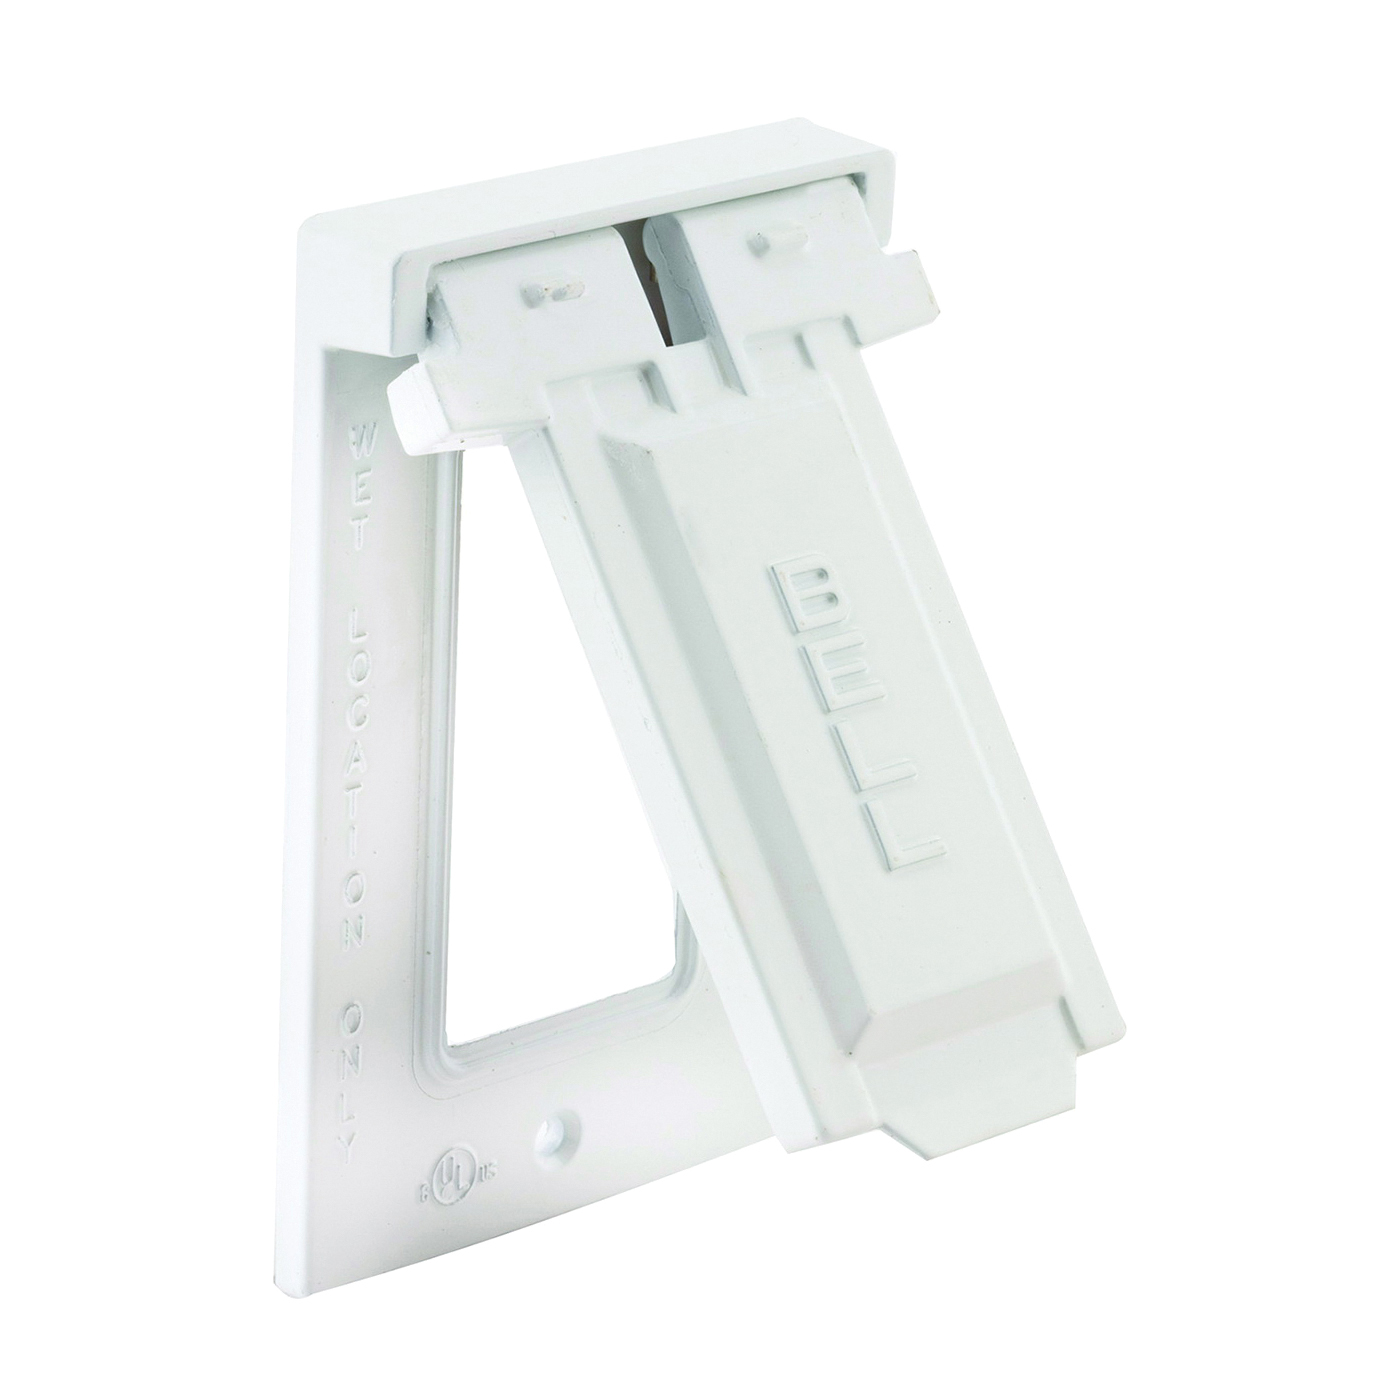 Picture of HUBBELL 5103-1 Cover, 4-9/16 in L, 2-13/16 in W, Metal, White, Powder-Coated